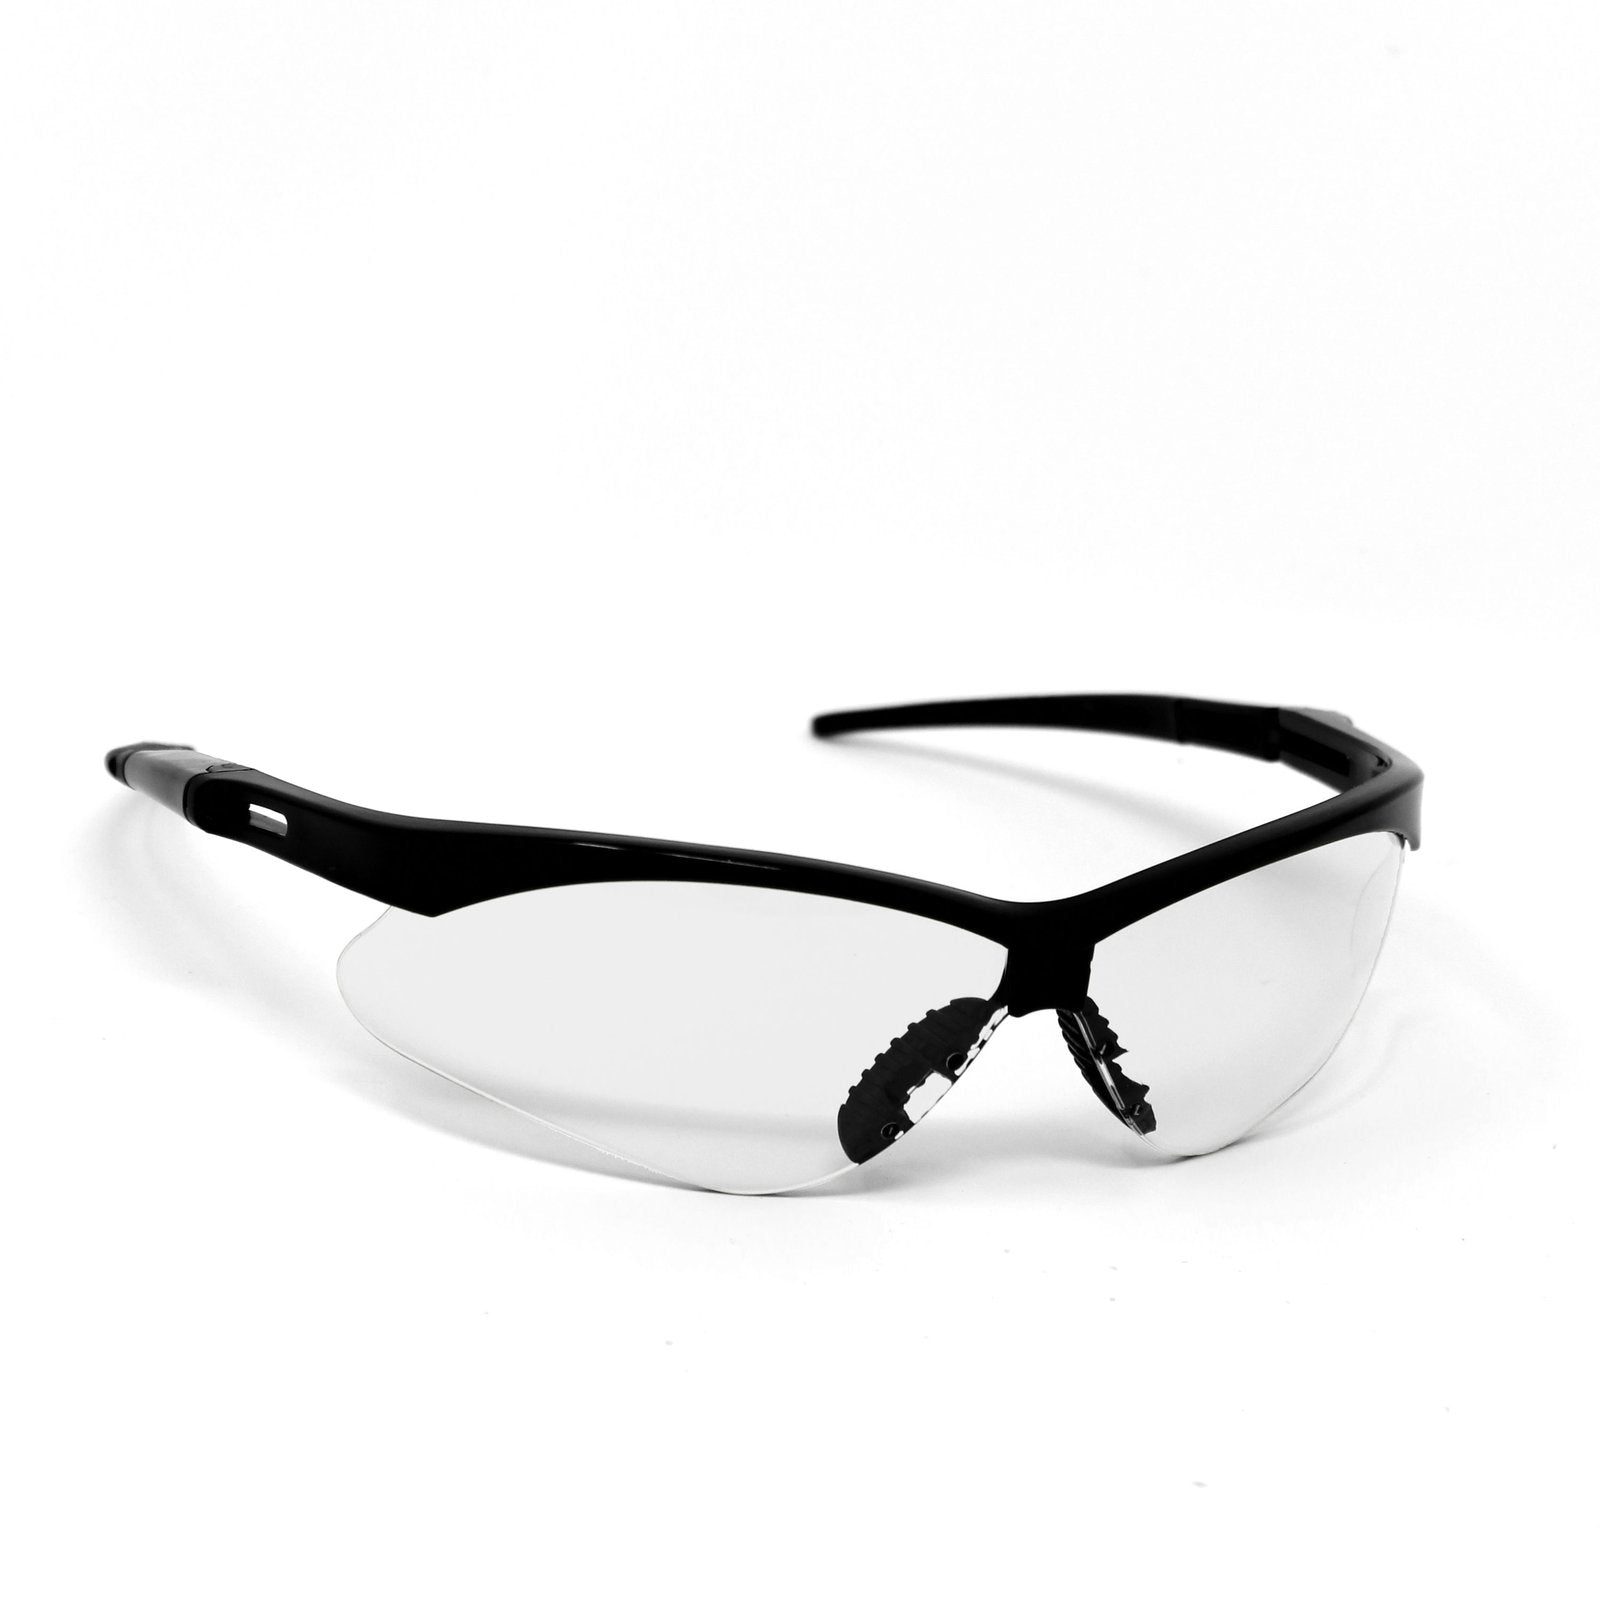 OPTIC MAX Clear Lens With Black Frame